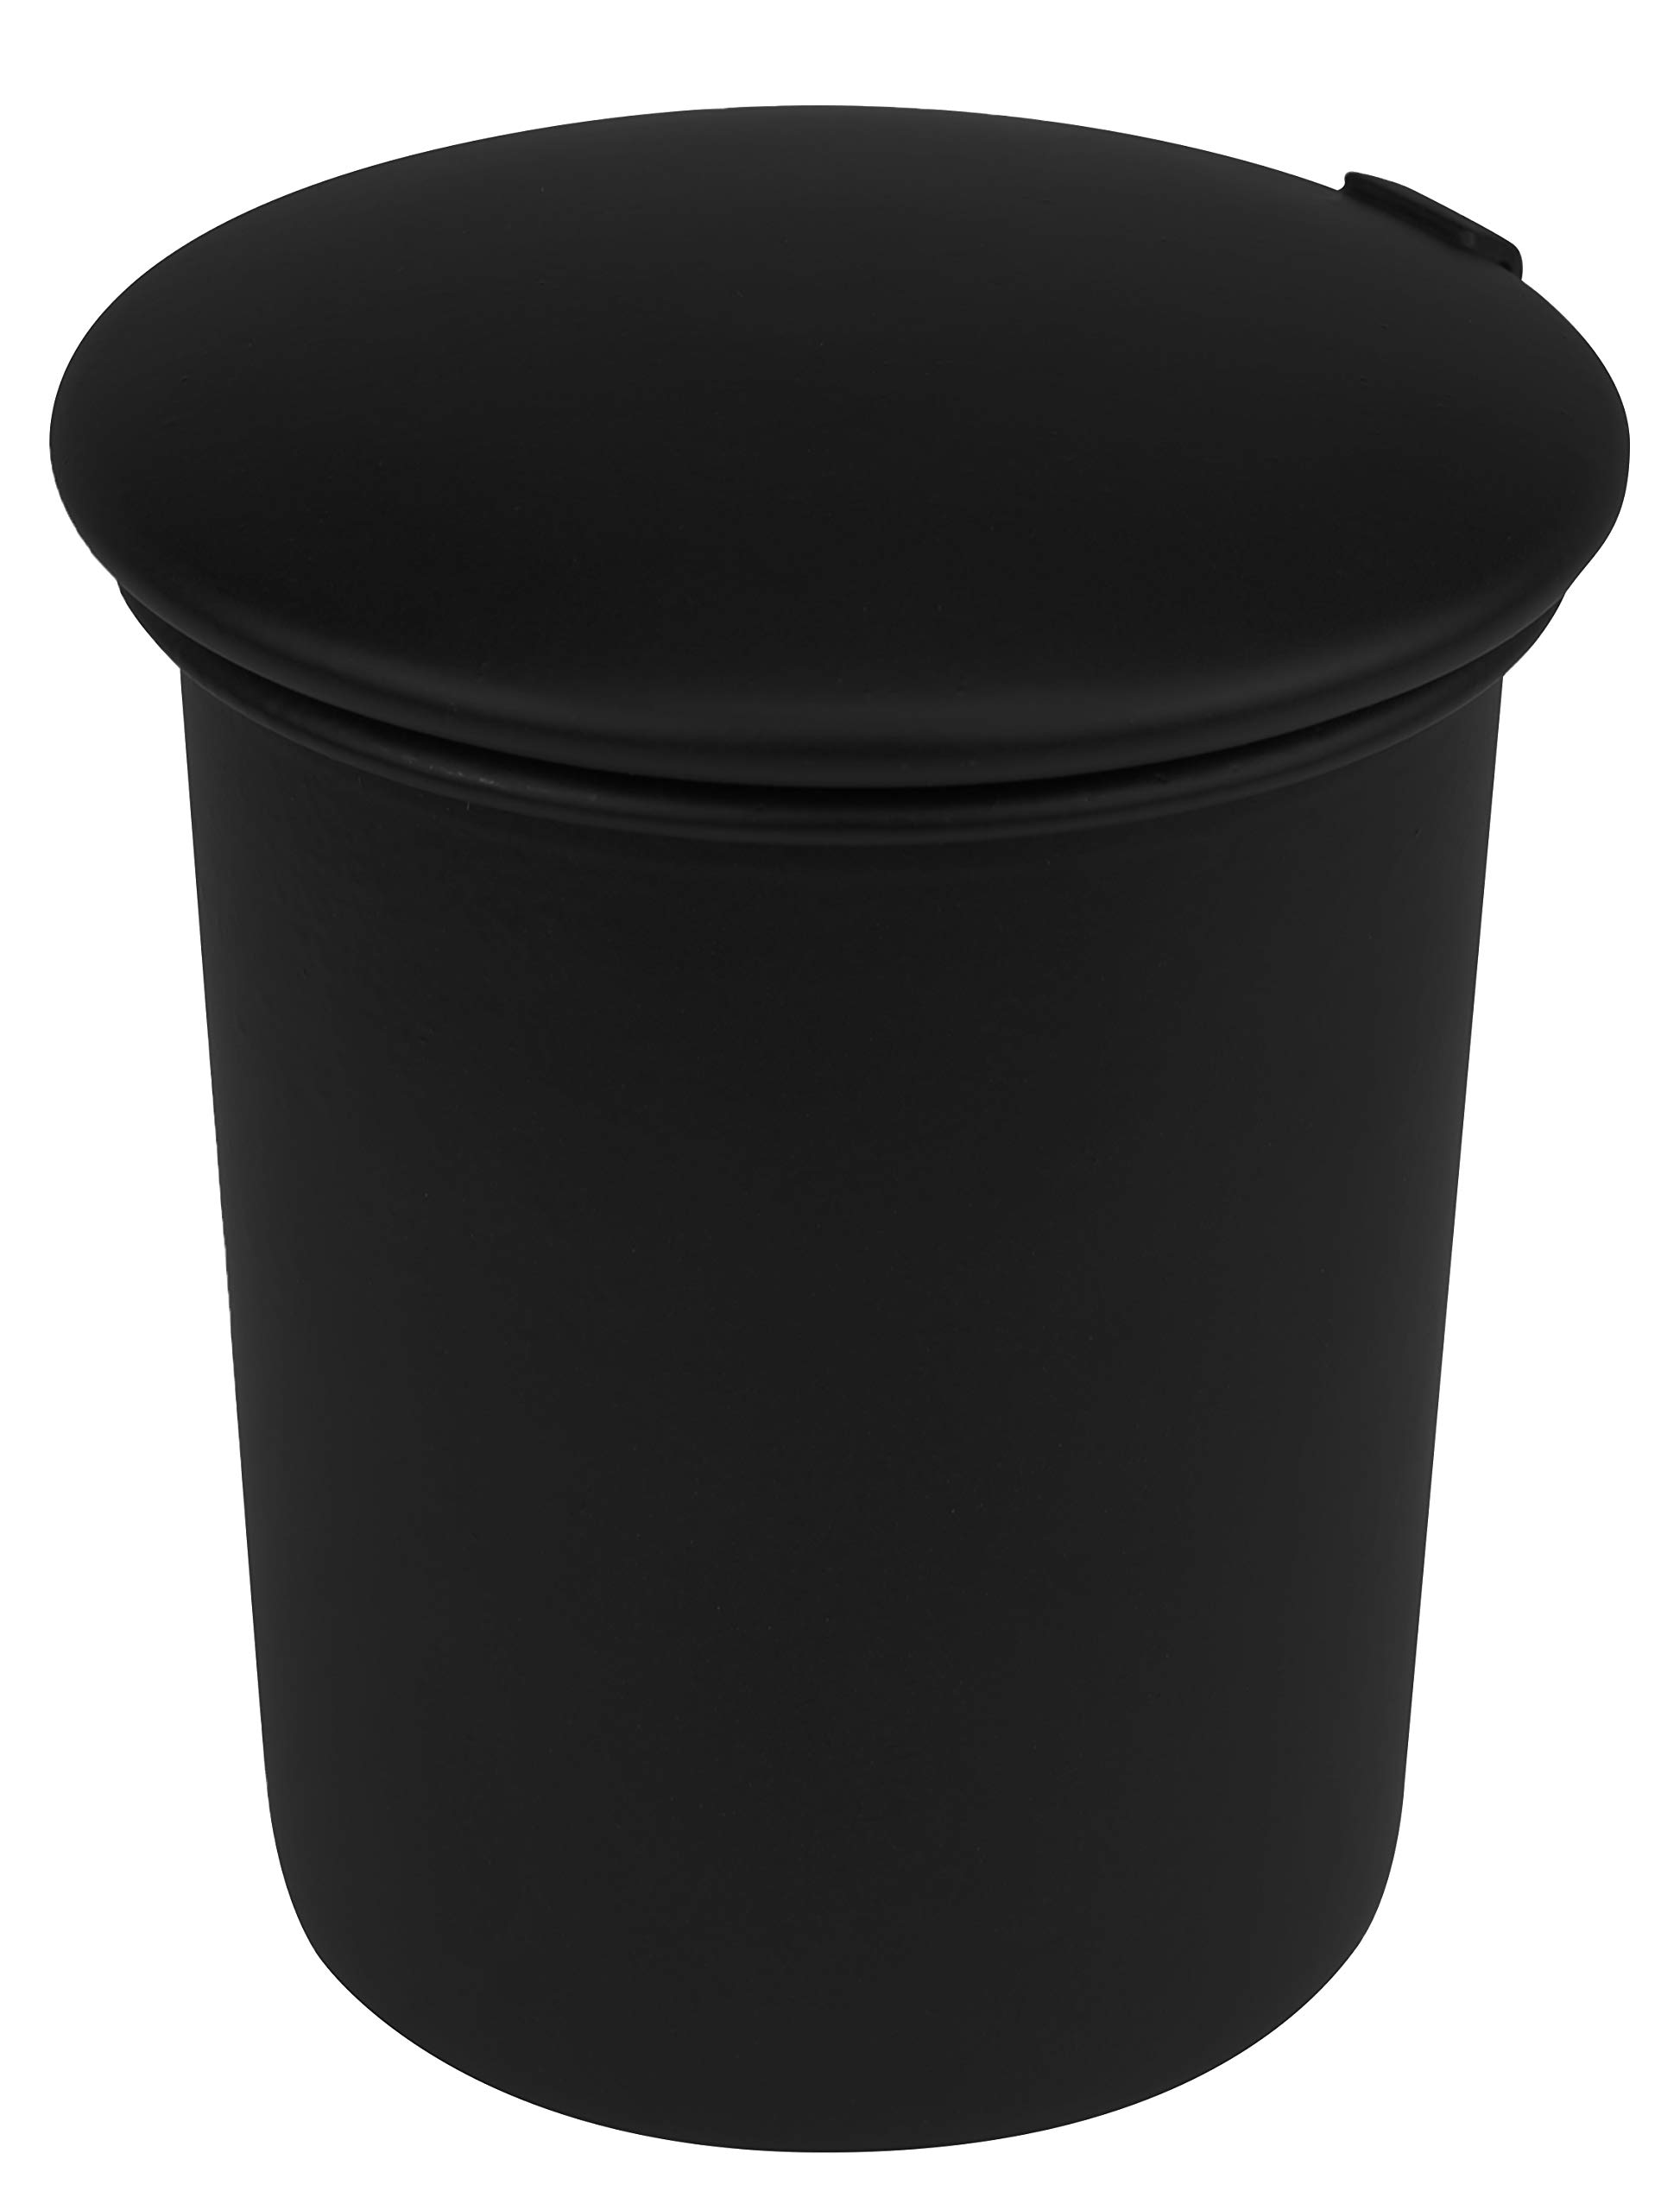 Stinky Cigar Car Ashtray, Spring Clip Holds All Cigar Sizes, Fits Any Standard Cup Holder, Matte Black